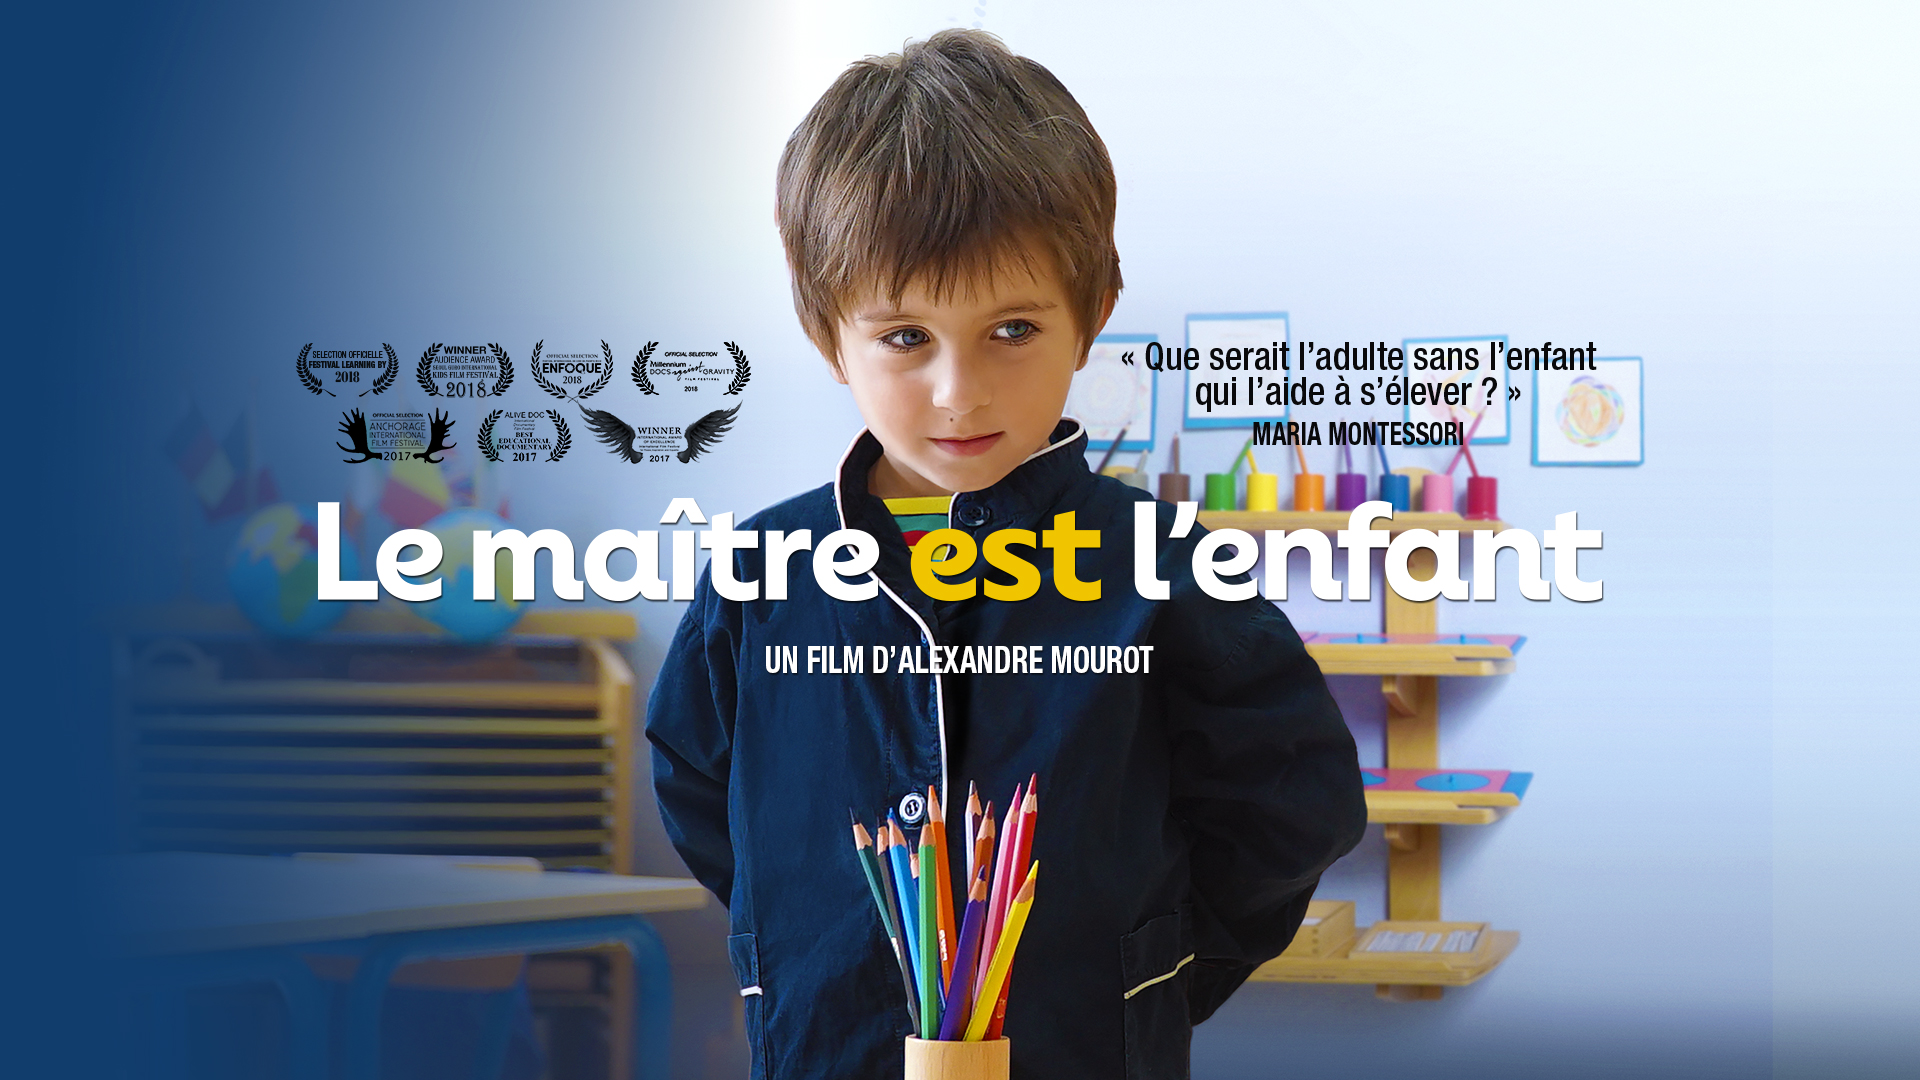 video preview of Le maître est l'enfant